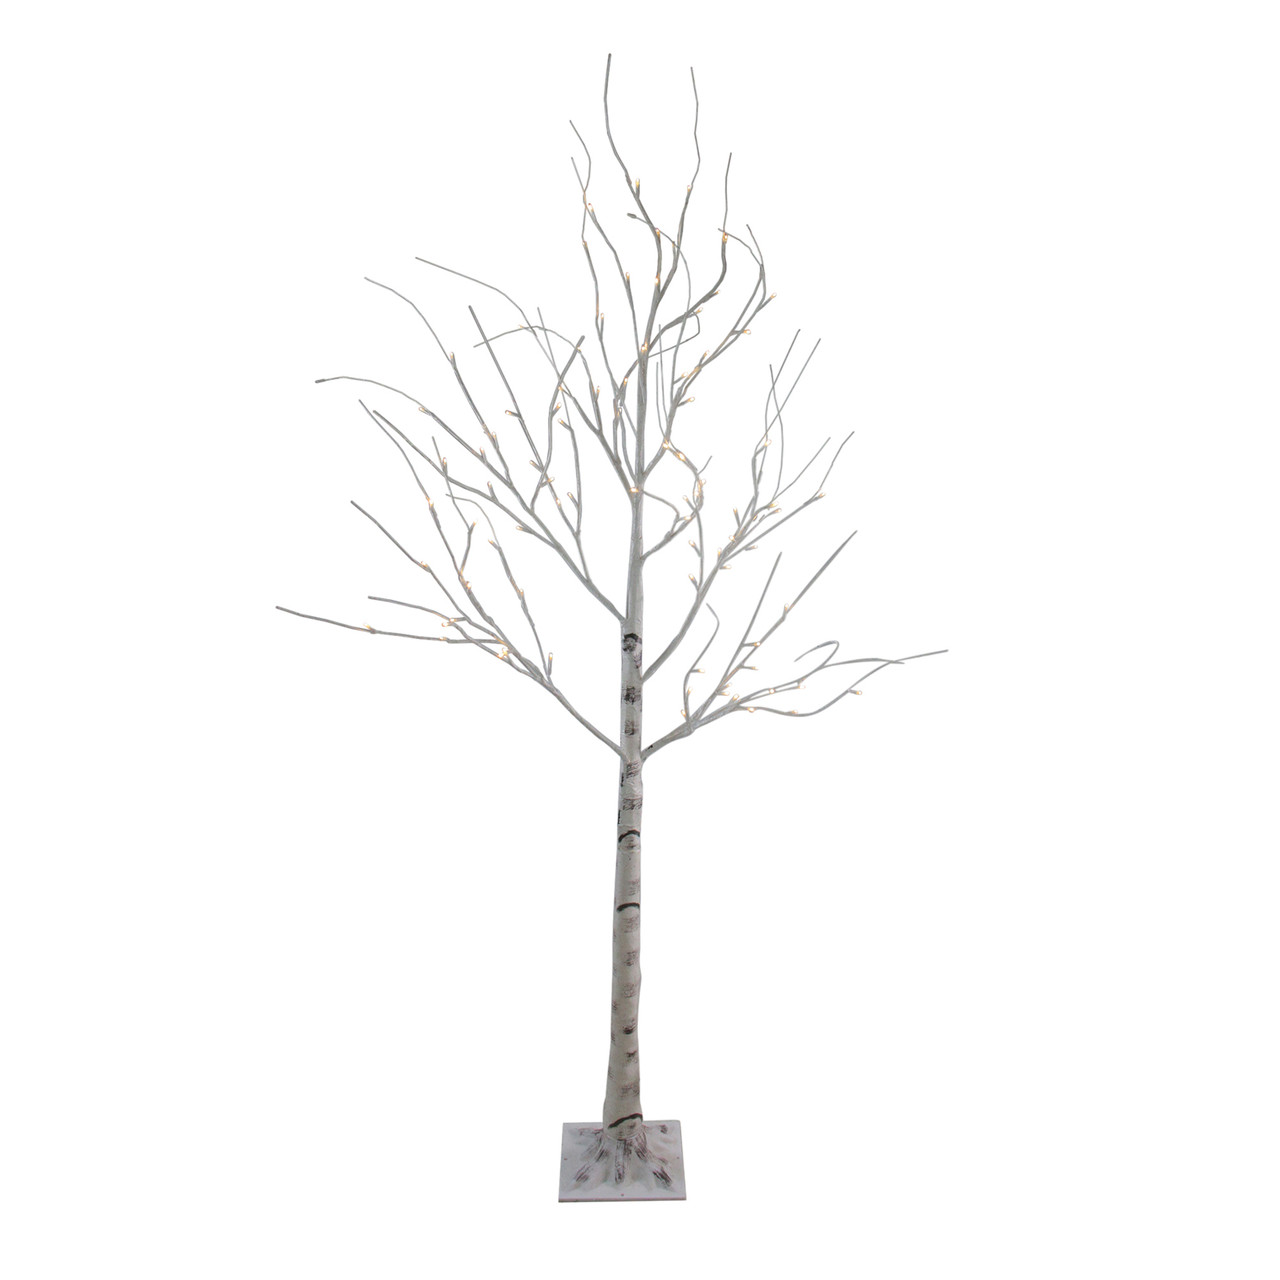 Pre Lit Christmas Twig Tree: 6' Pre-Lit White Christmas Twig Tree Outdoor Yard Art